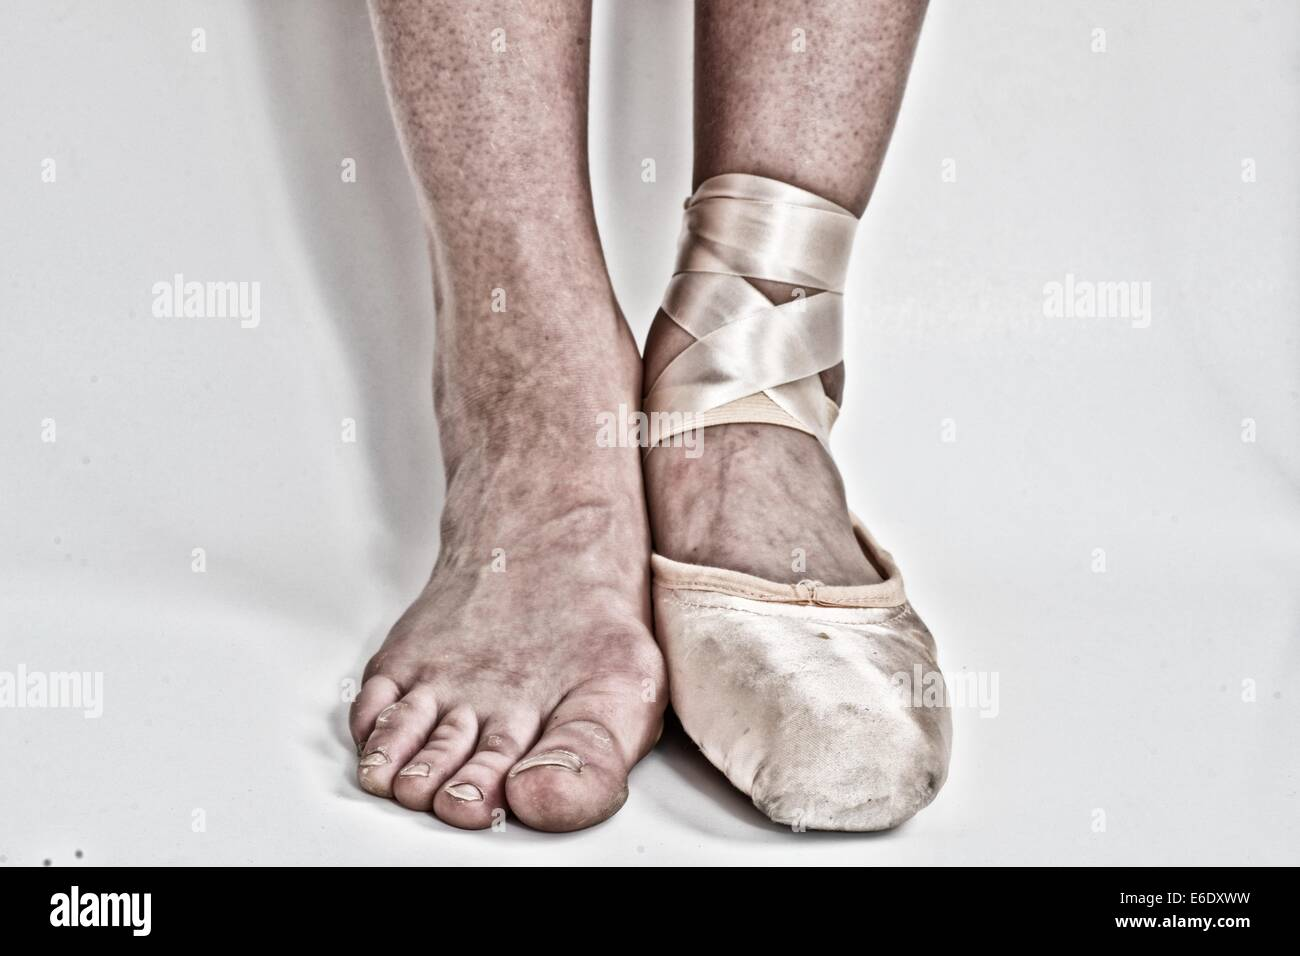 Feet Of A Ballerina One With A Ballet Pointe Shoe And The